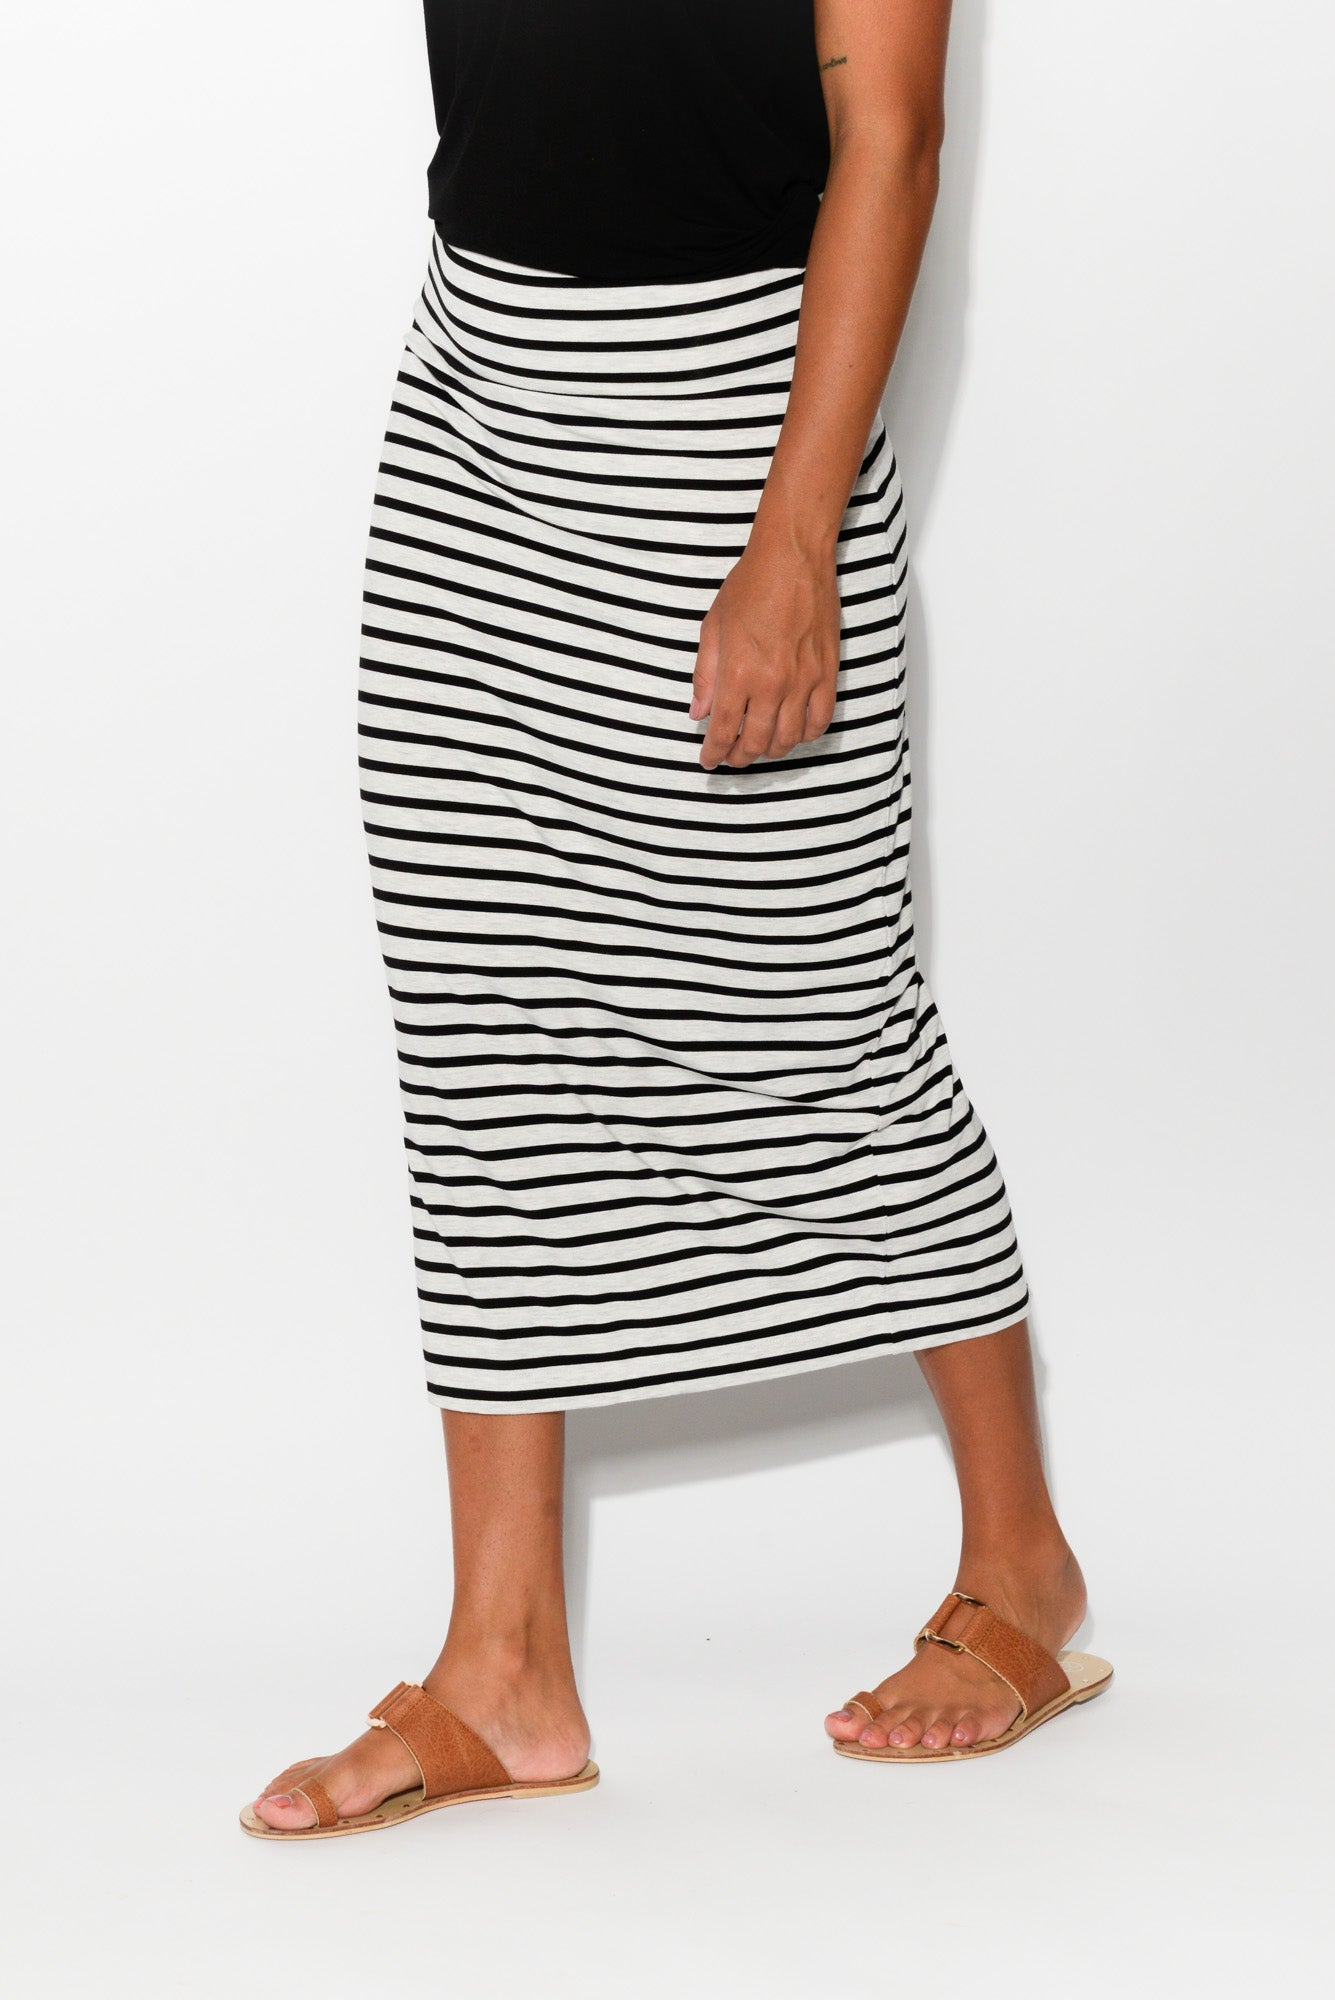 Grey Stripe Bamboo Maxi Tube Skirt - Blue Bungalow